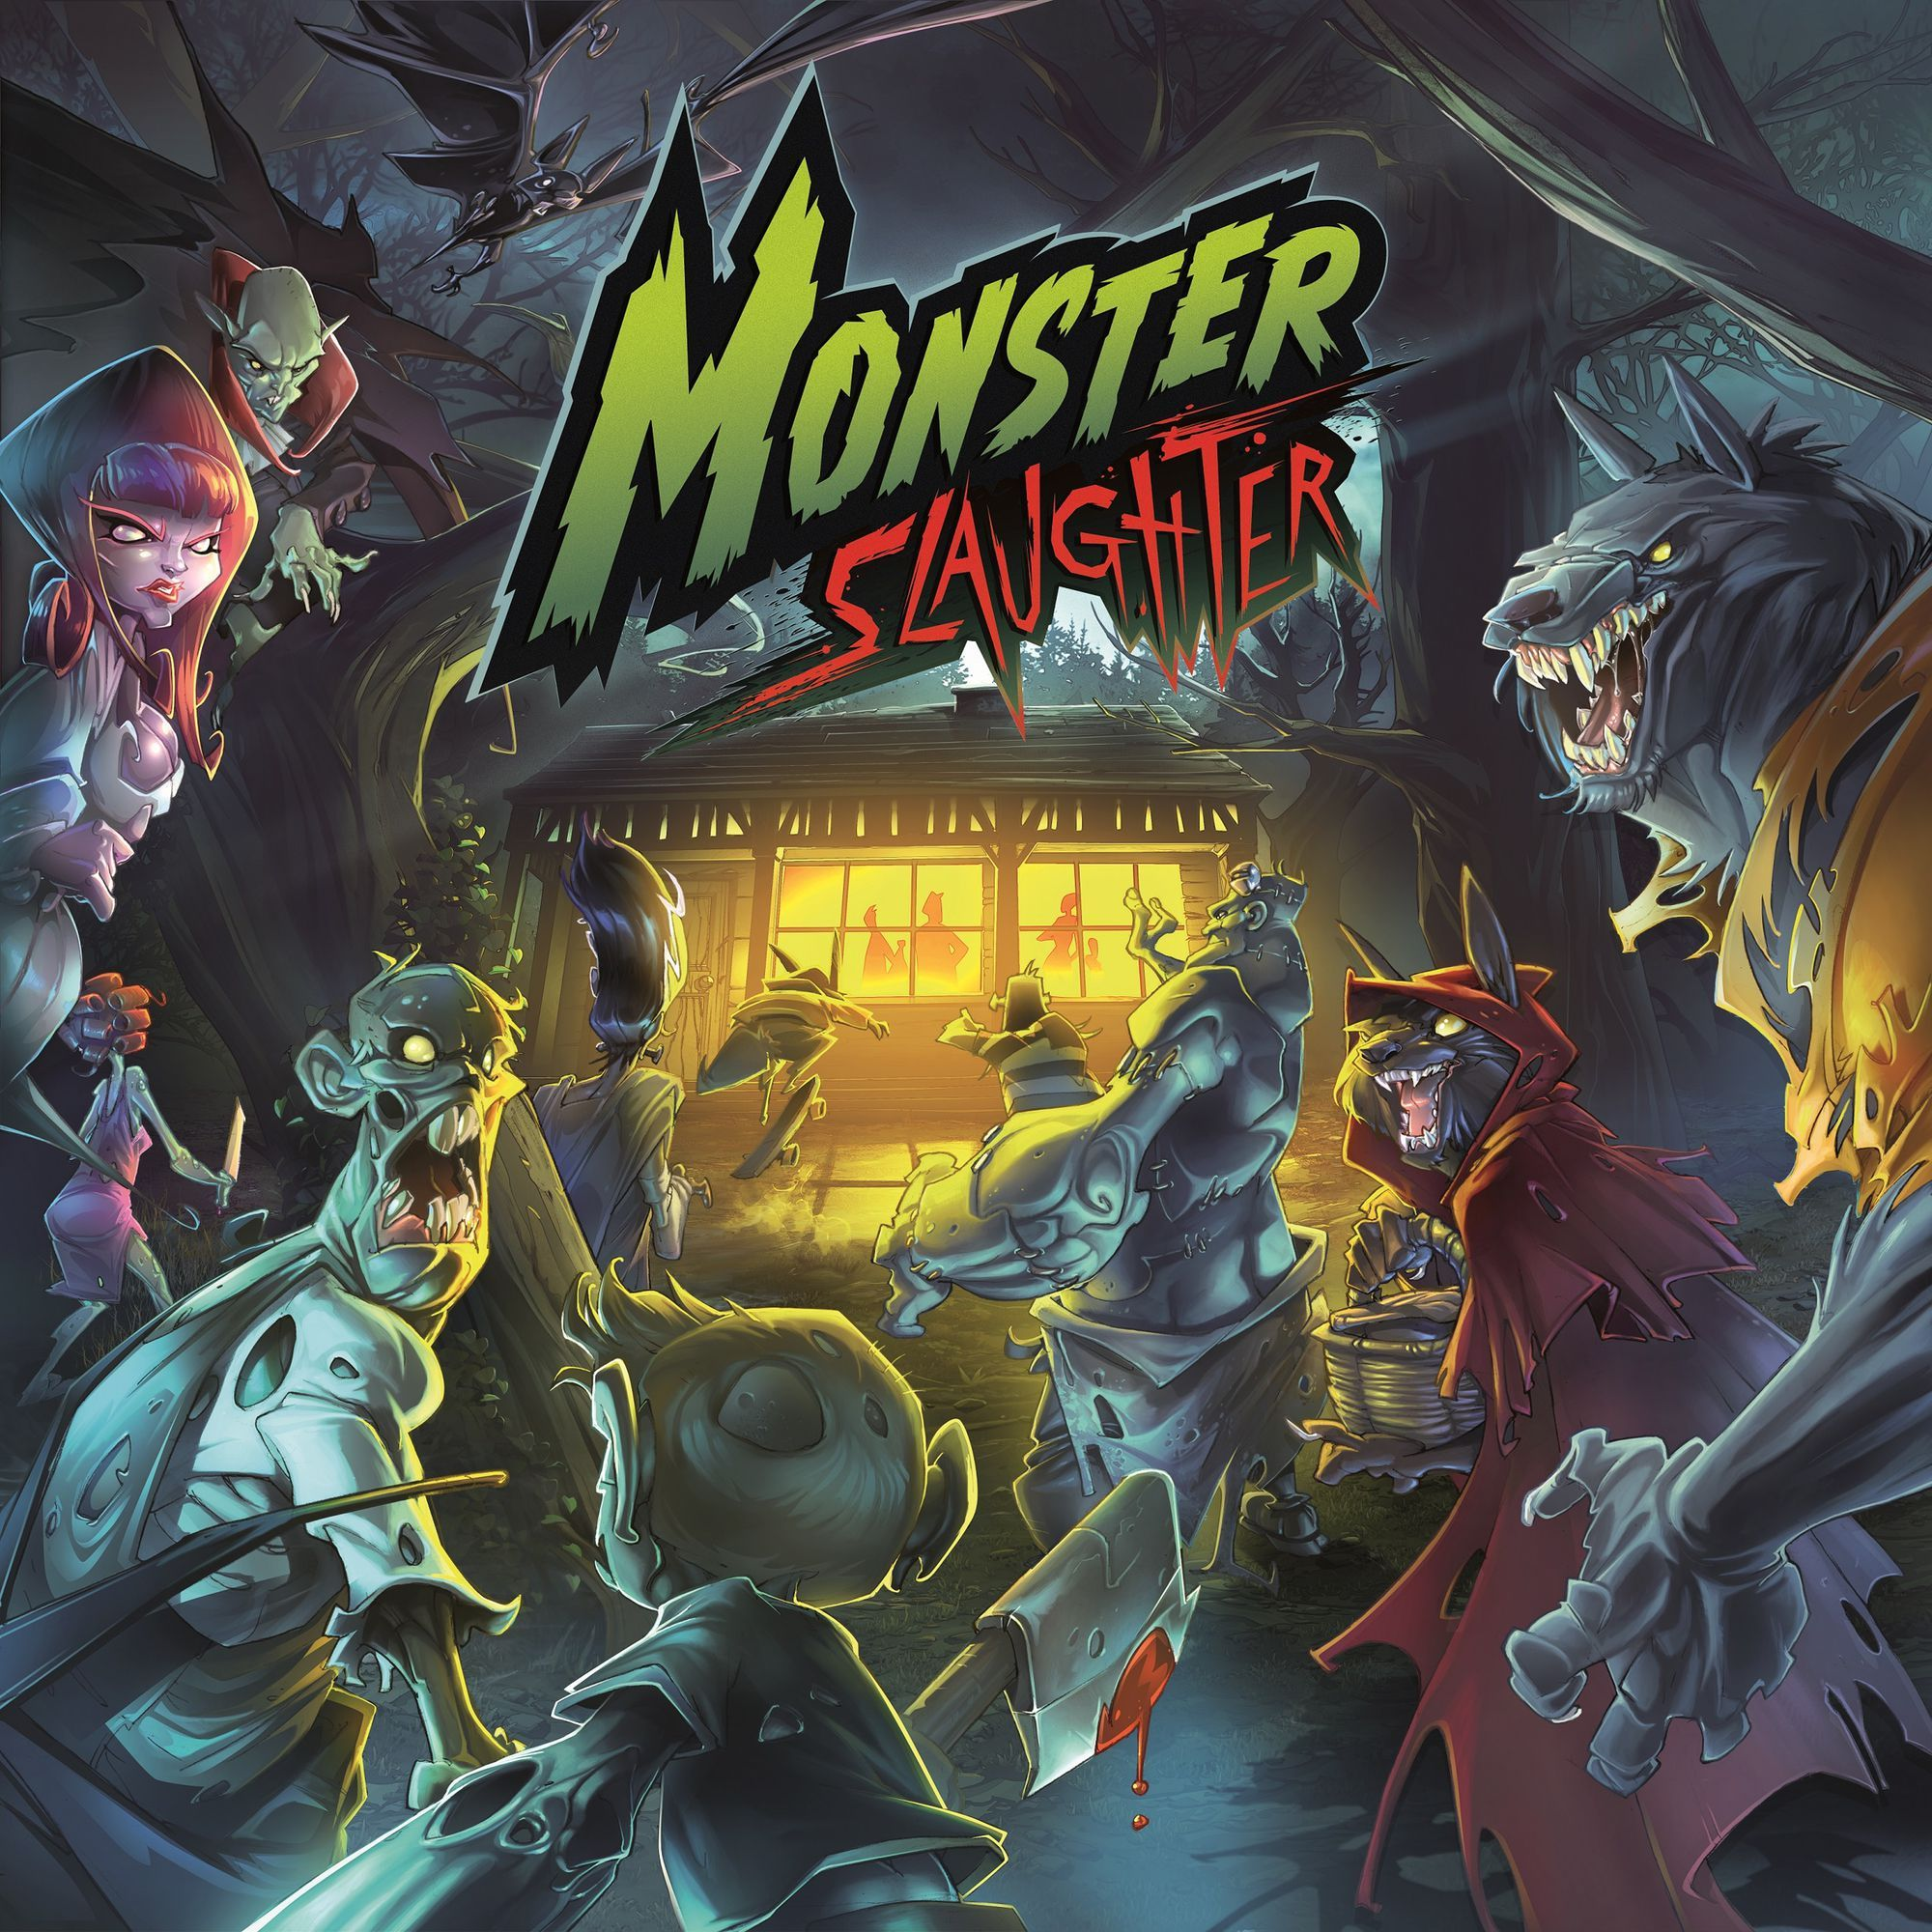 Main image for Monster Slaughter board game